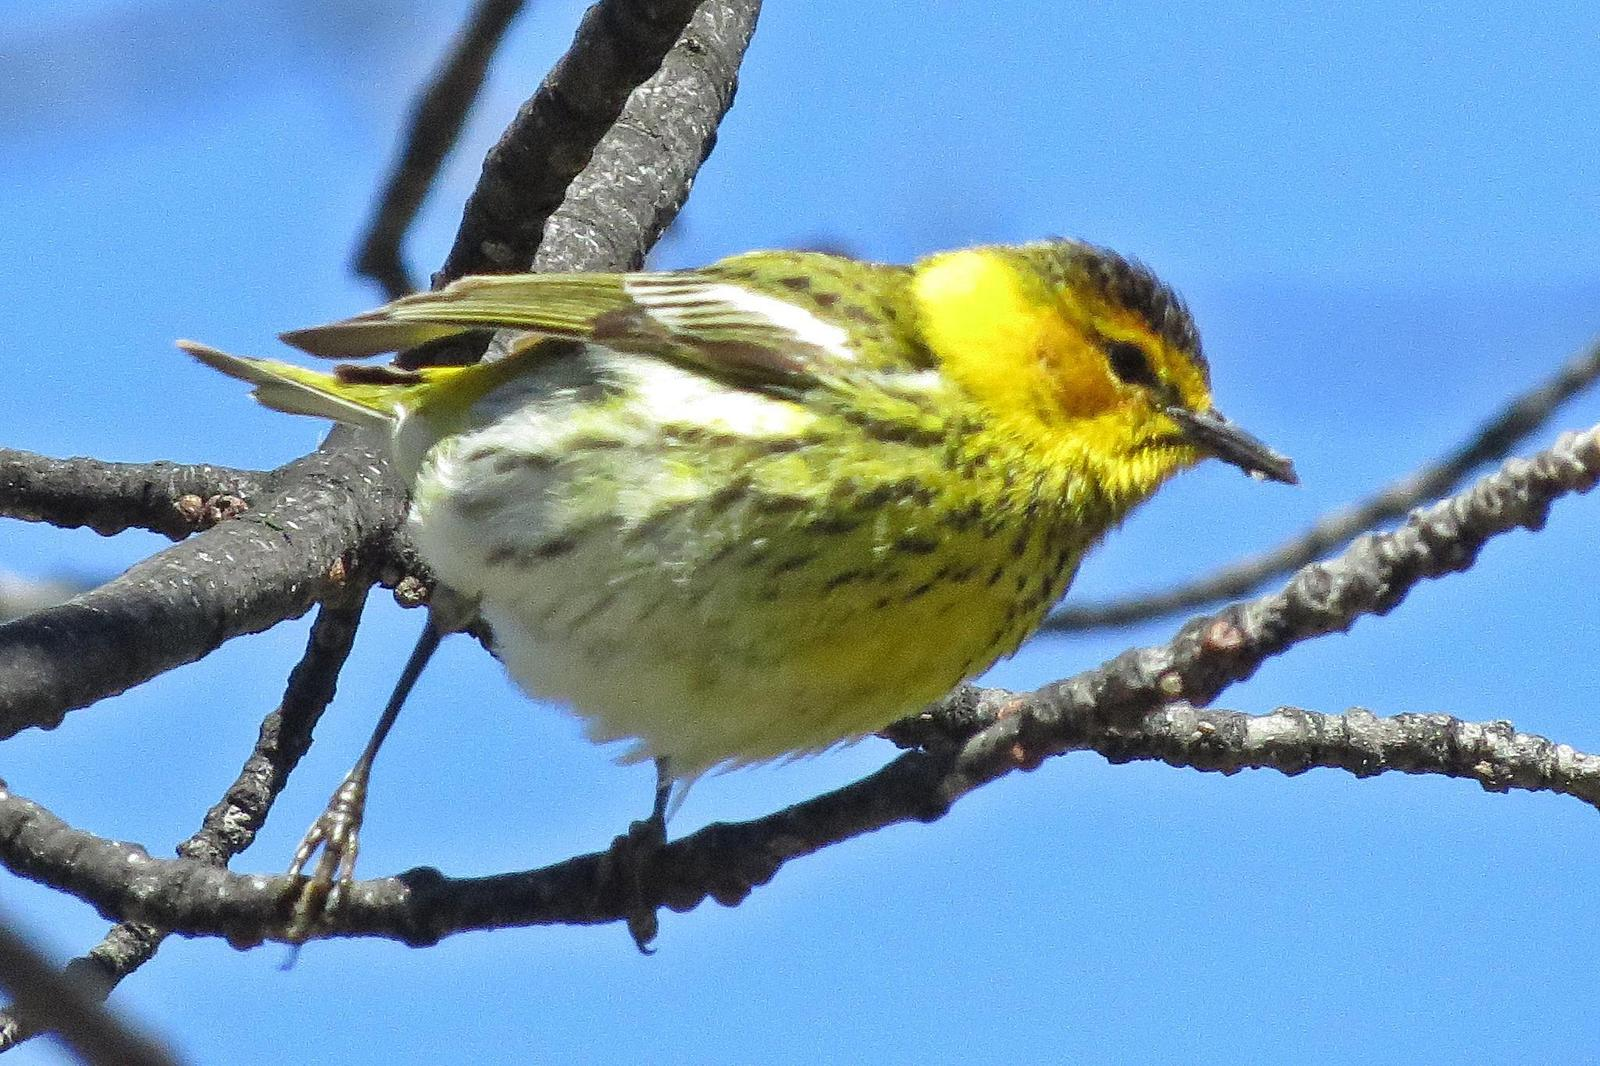 Cape May Warbler Photo by Enid Bachman